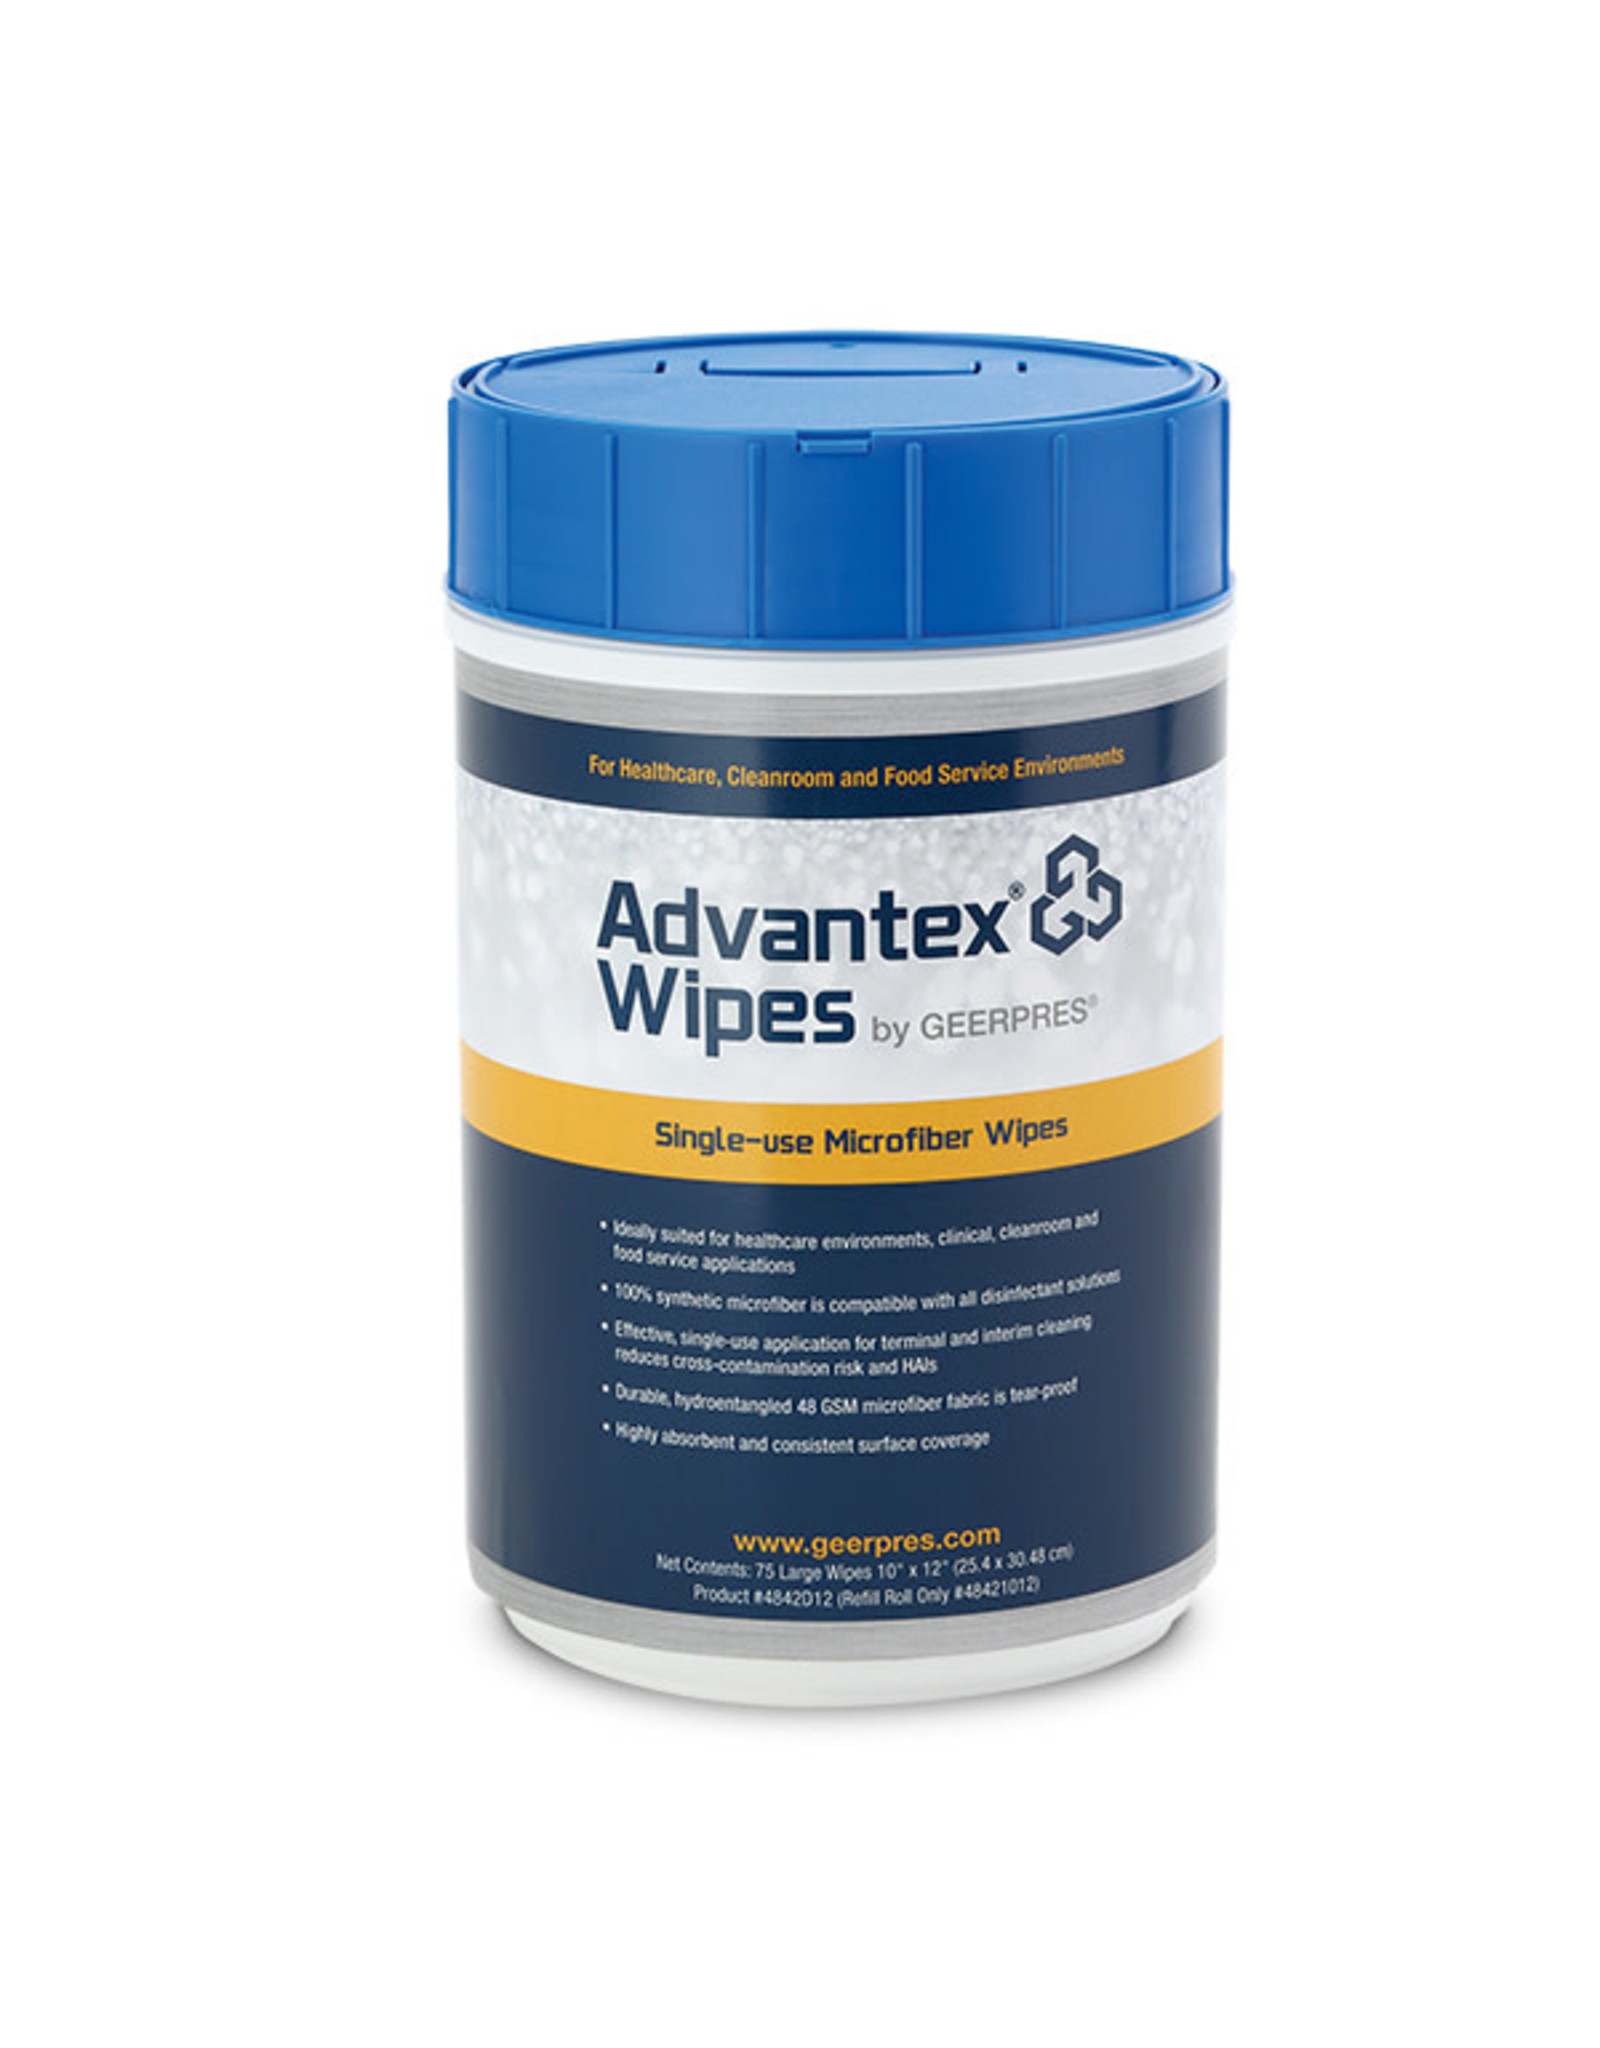 Advantex dispenser each